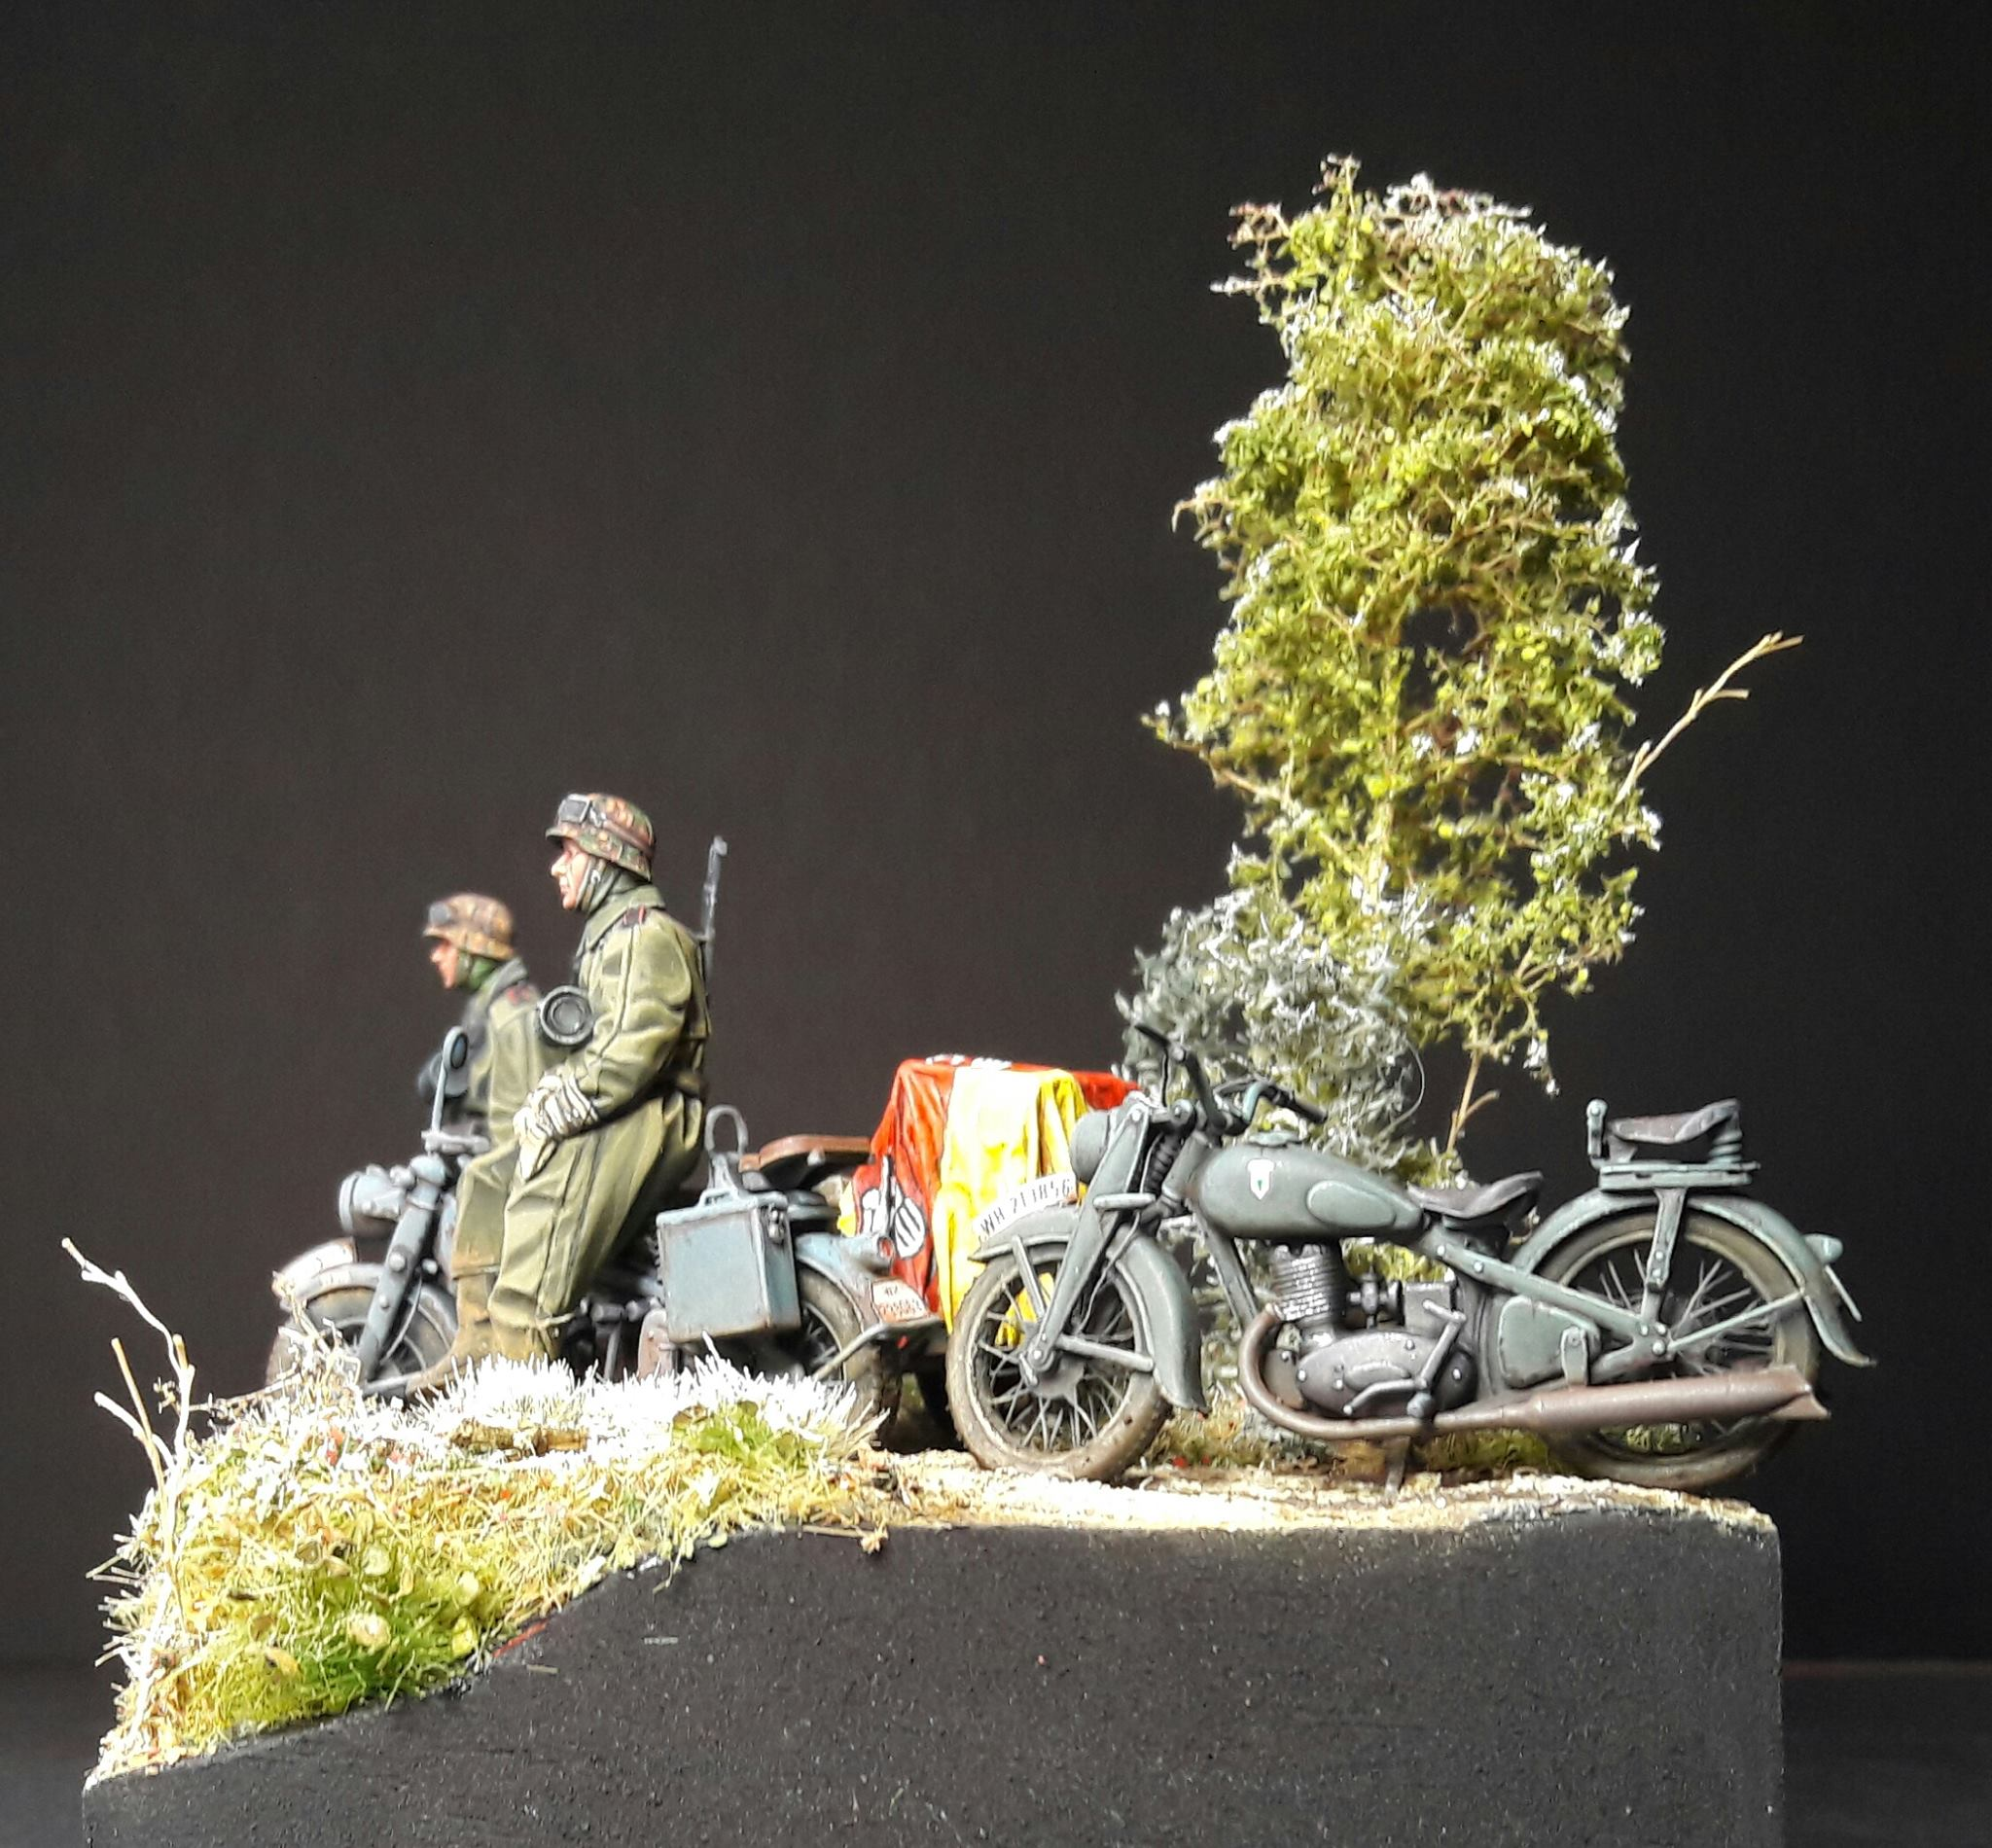 Zündapp KS750 - Sidecar - Great Wall Hobby + figurines Alpine - 1/35 - Page 5 48826320107667102118058500362361286940148o